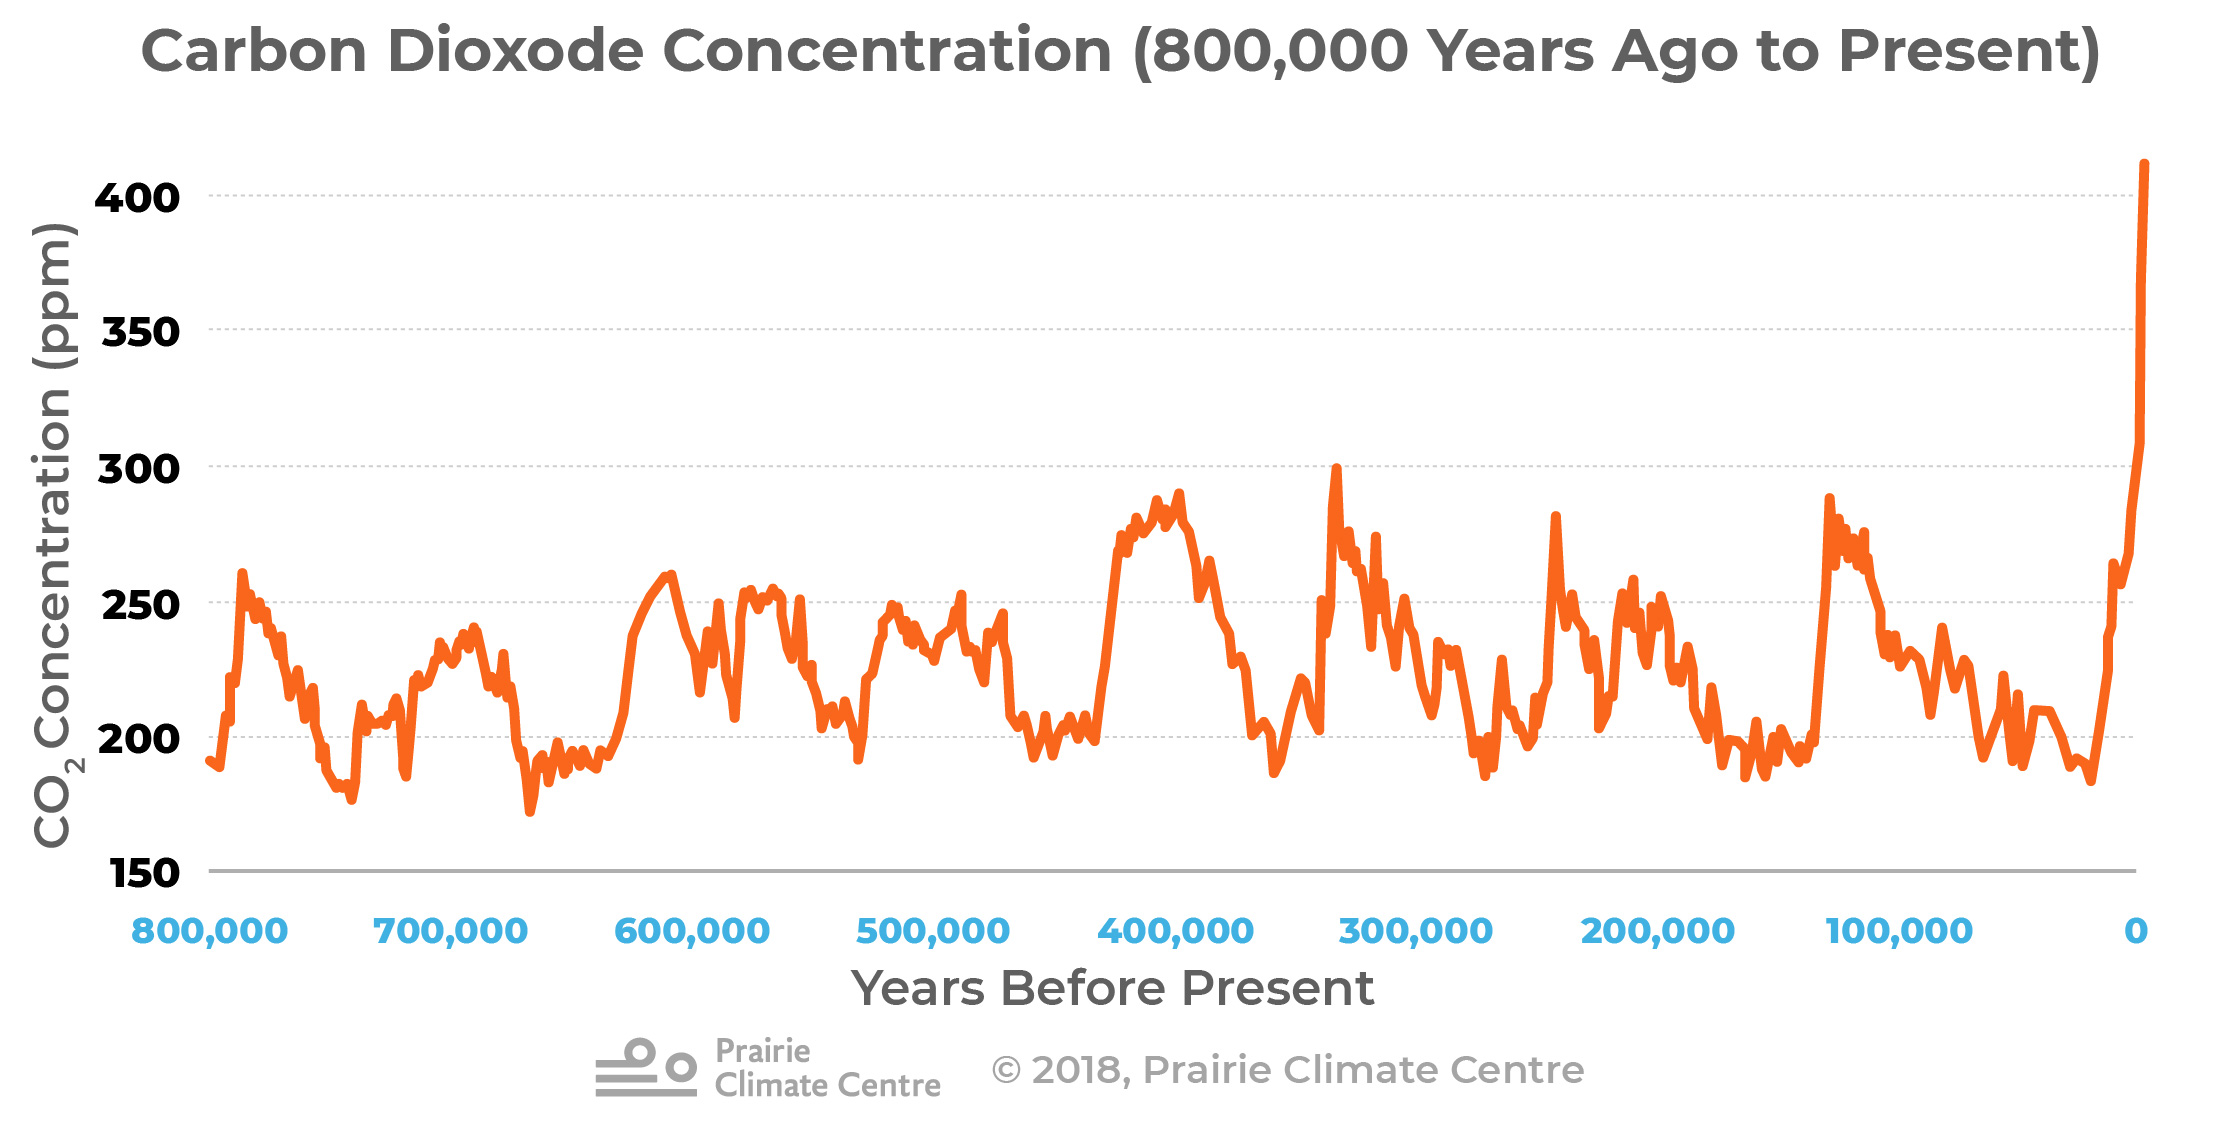 CO2 Concentration over 800,000 years